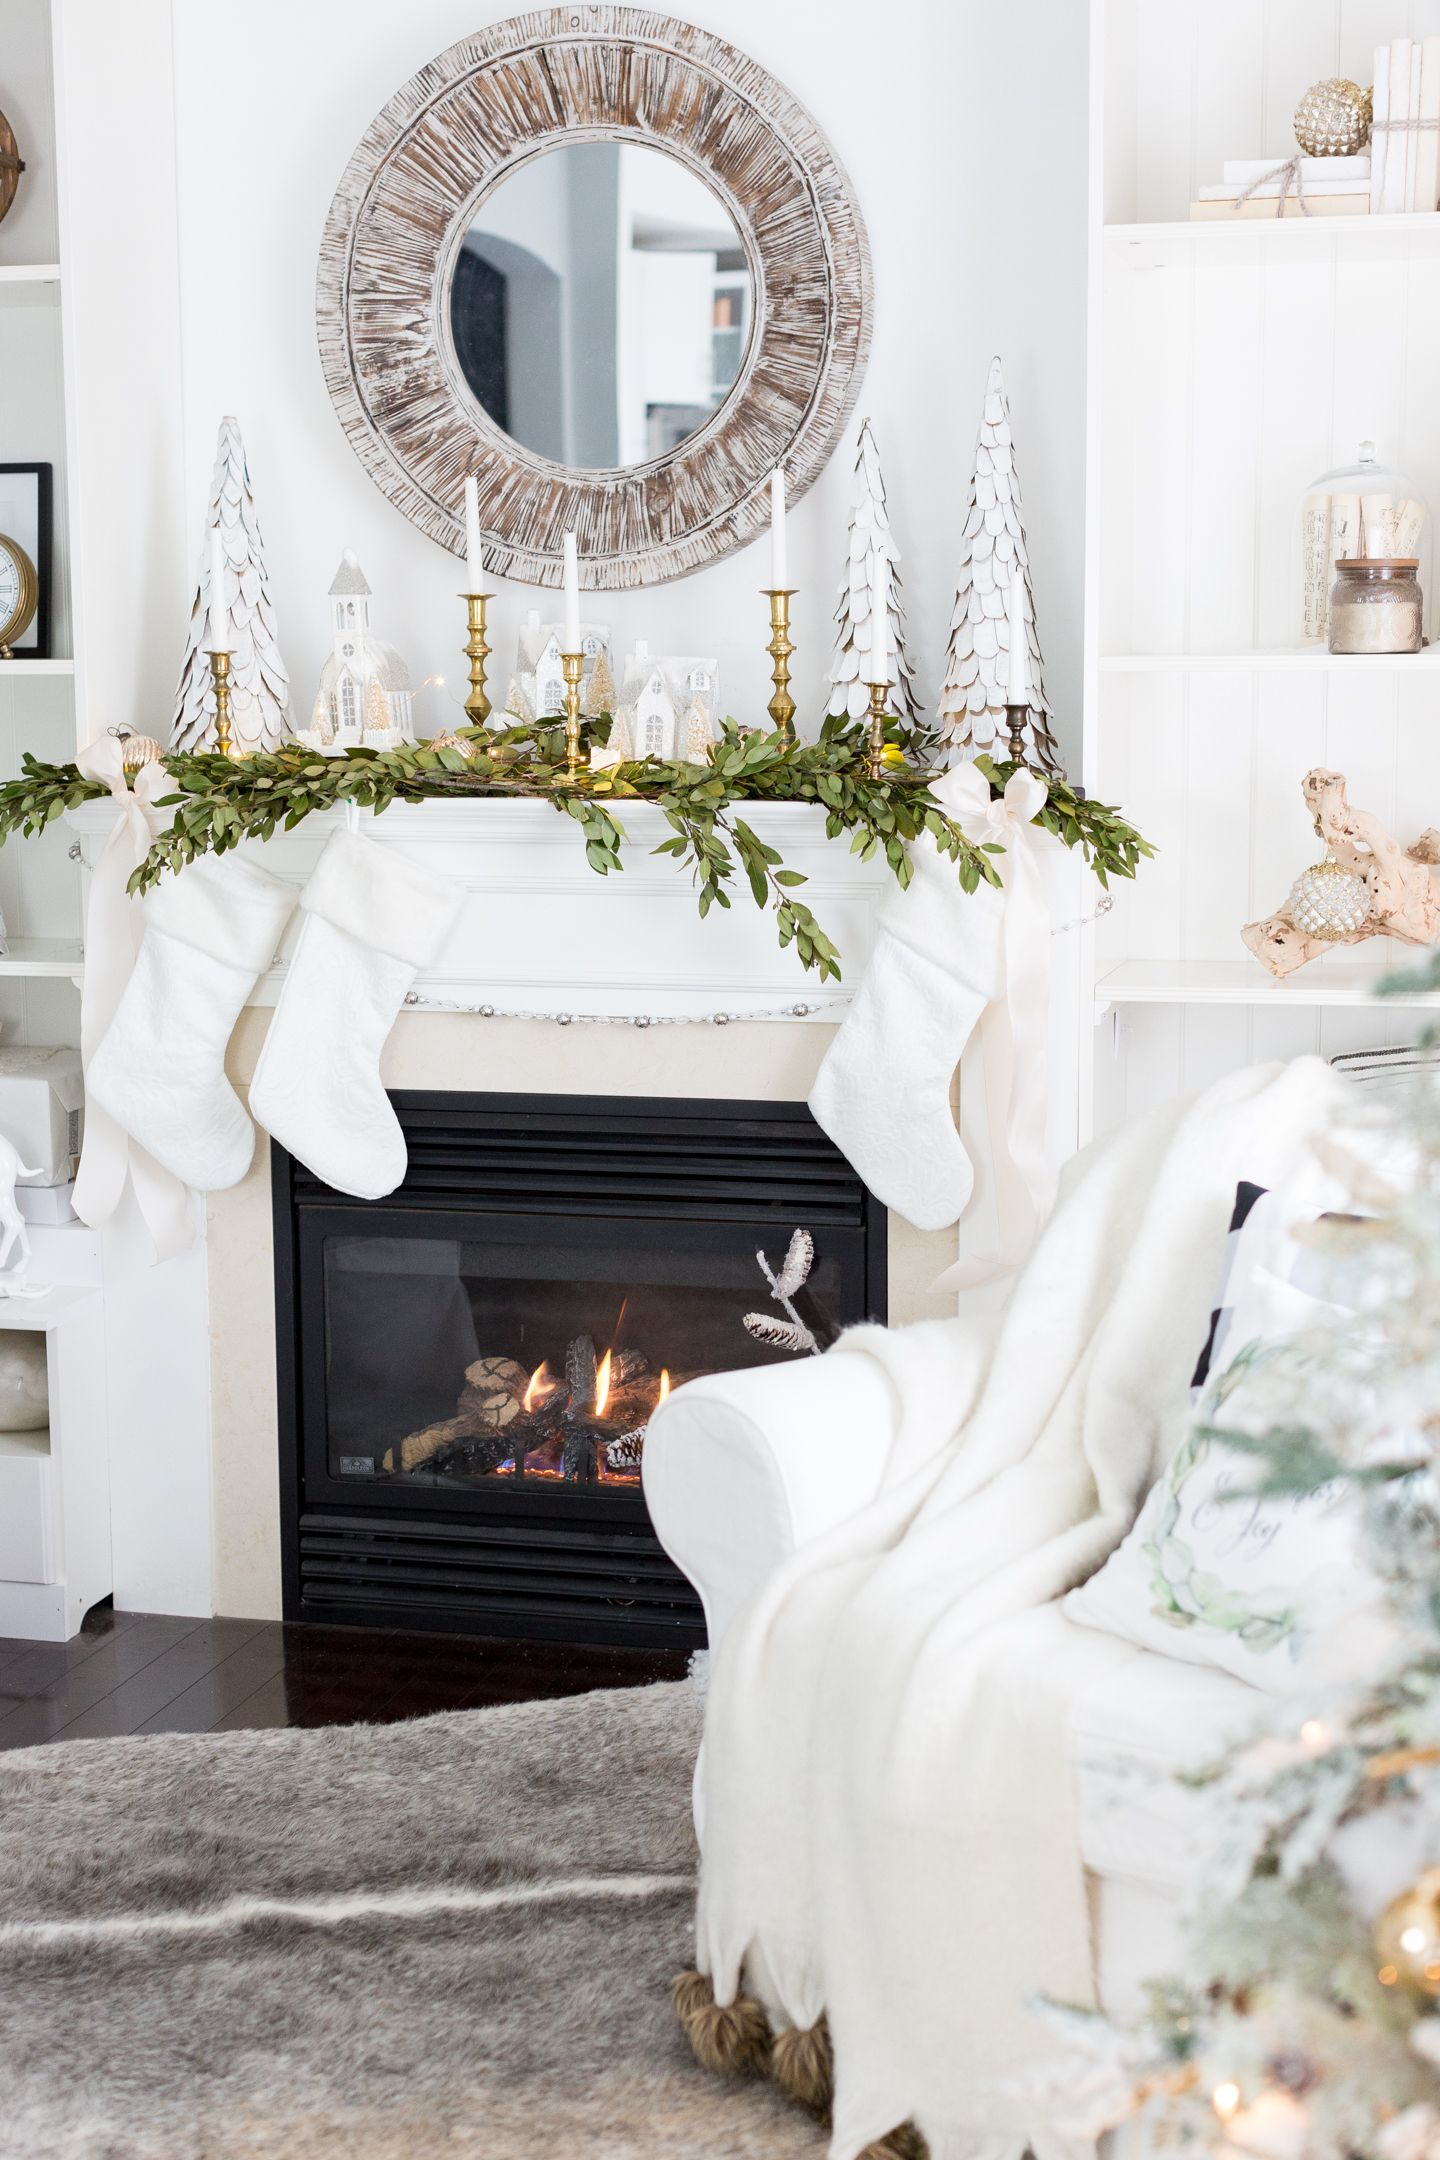 hallstrom home the best christmas farmhouse decor on amazon - Fireplace Christmas Decorations Amazon